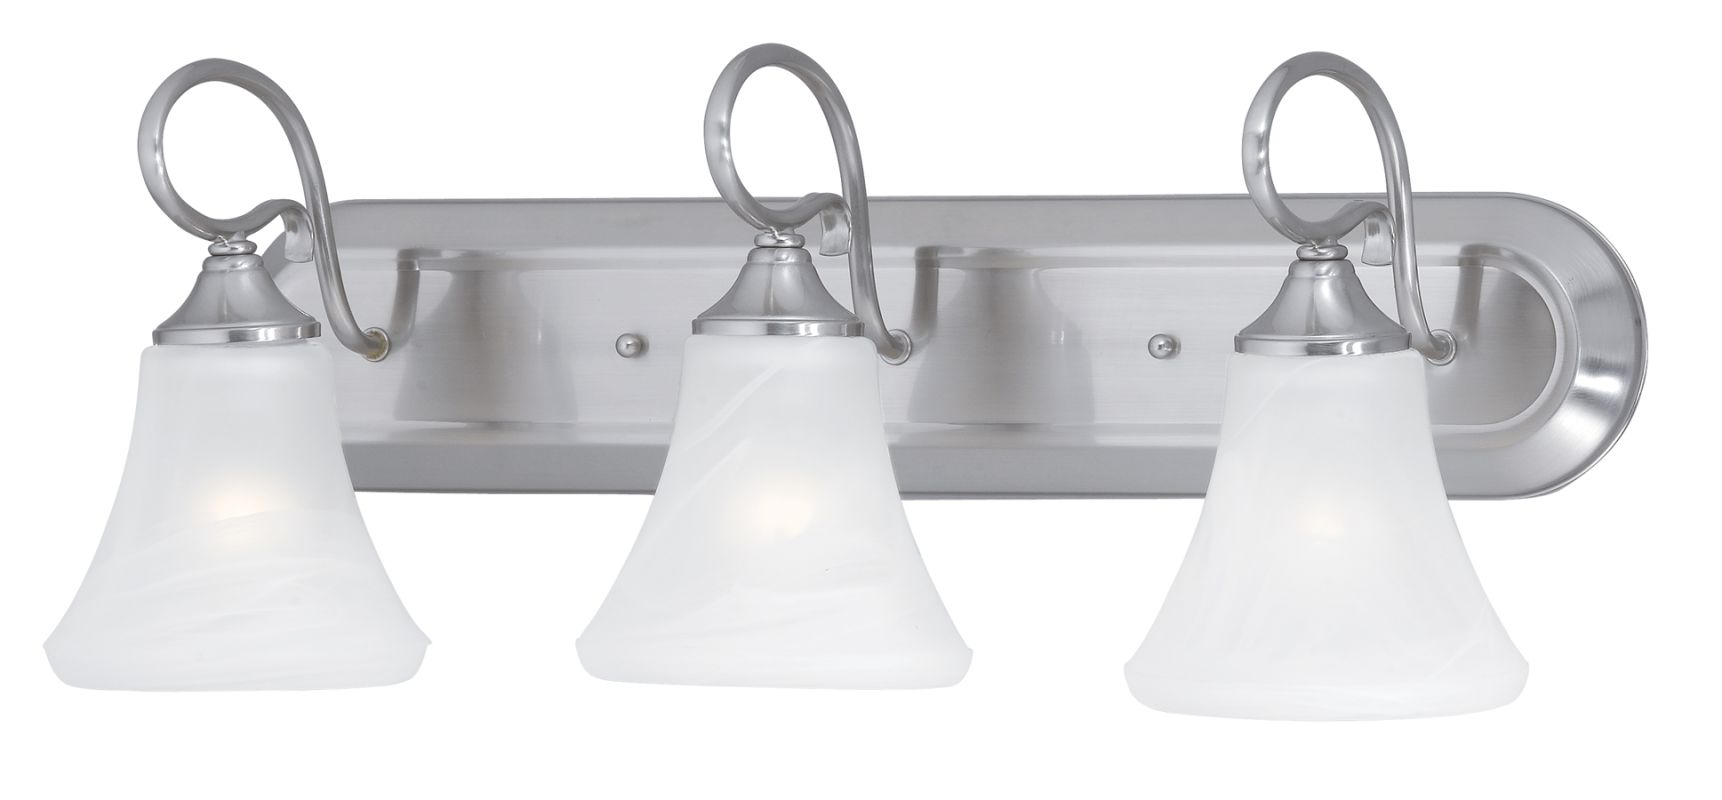 Hinkley lighting 5923br 3 light 24 wide bathroom fixture from the daphne collection brushed bronze for Brushed bronze bathroom lighting